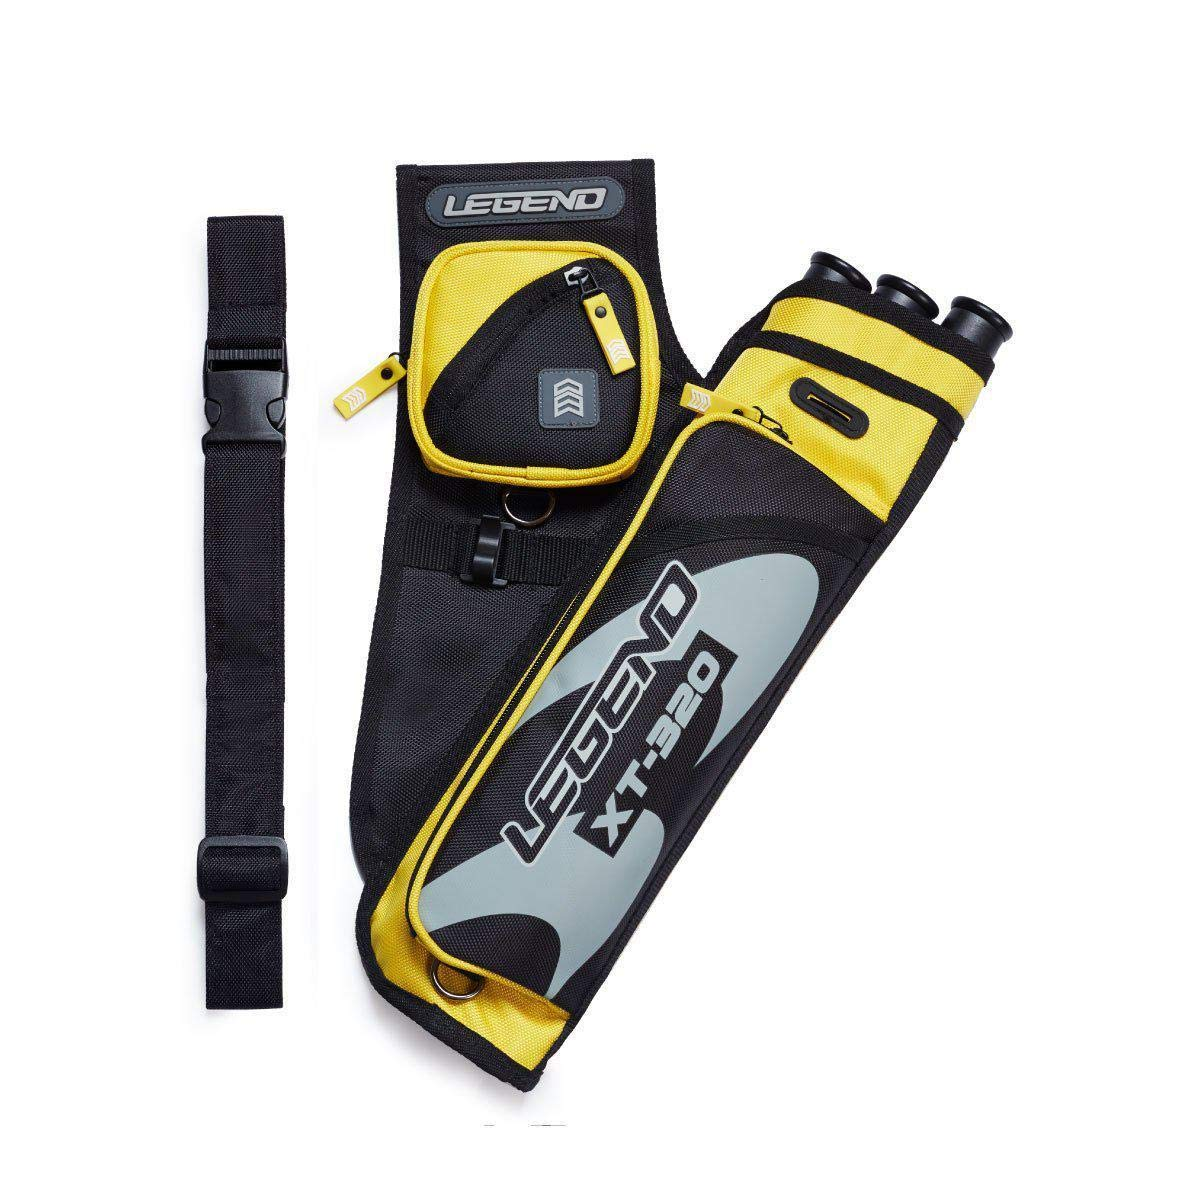 Legend Archery Hip Target Quiver 3-Tube Multi-Pocket Arrow Holder Lightweight and Functional XT320 (Yellow/Right)